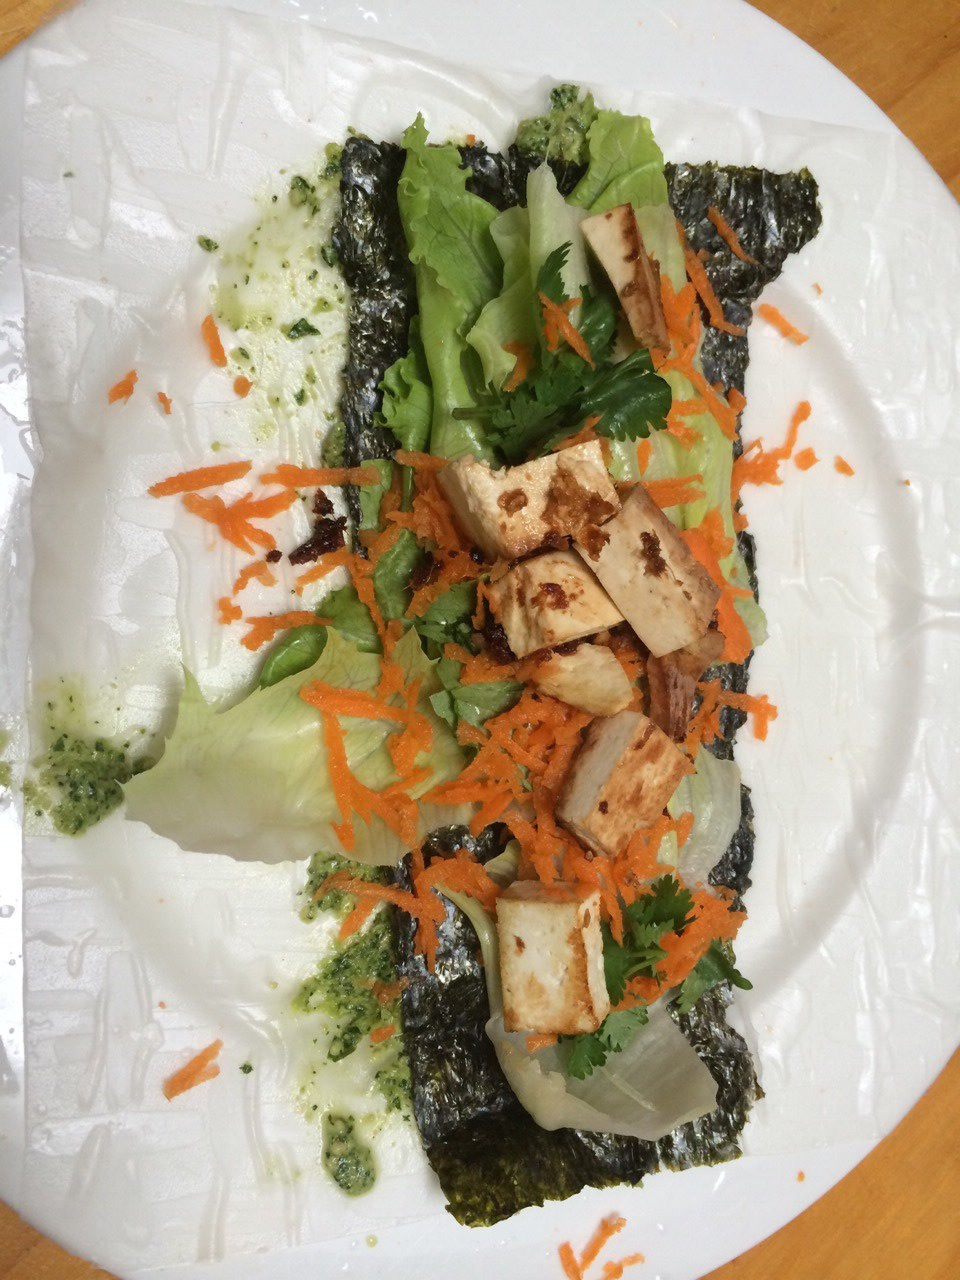 Rice paper rolls filled with marinated tofu, kale pesto and seaweed